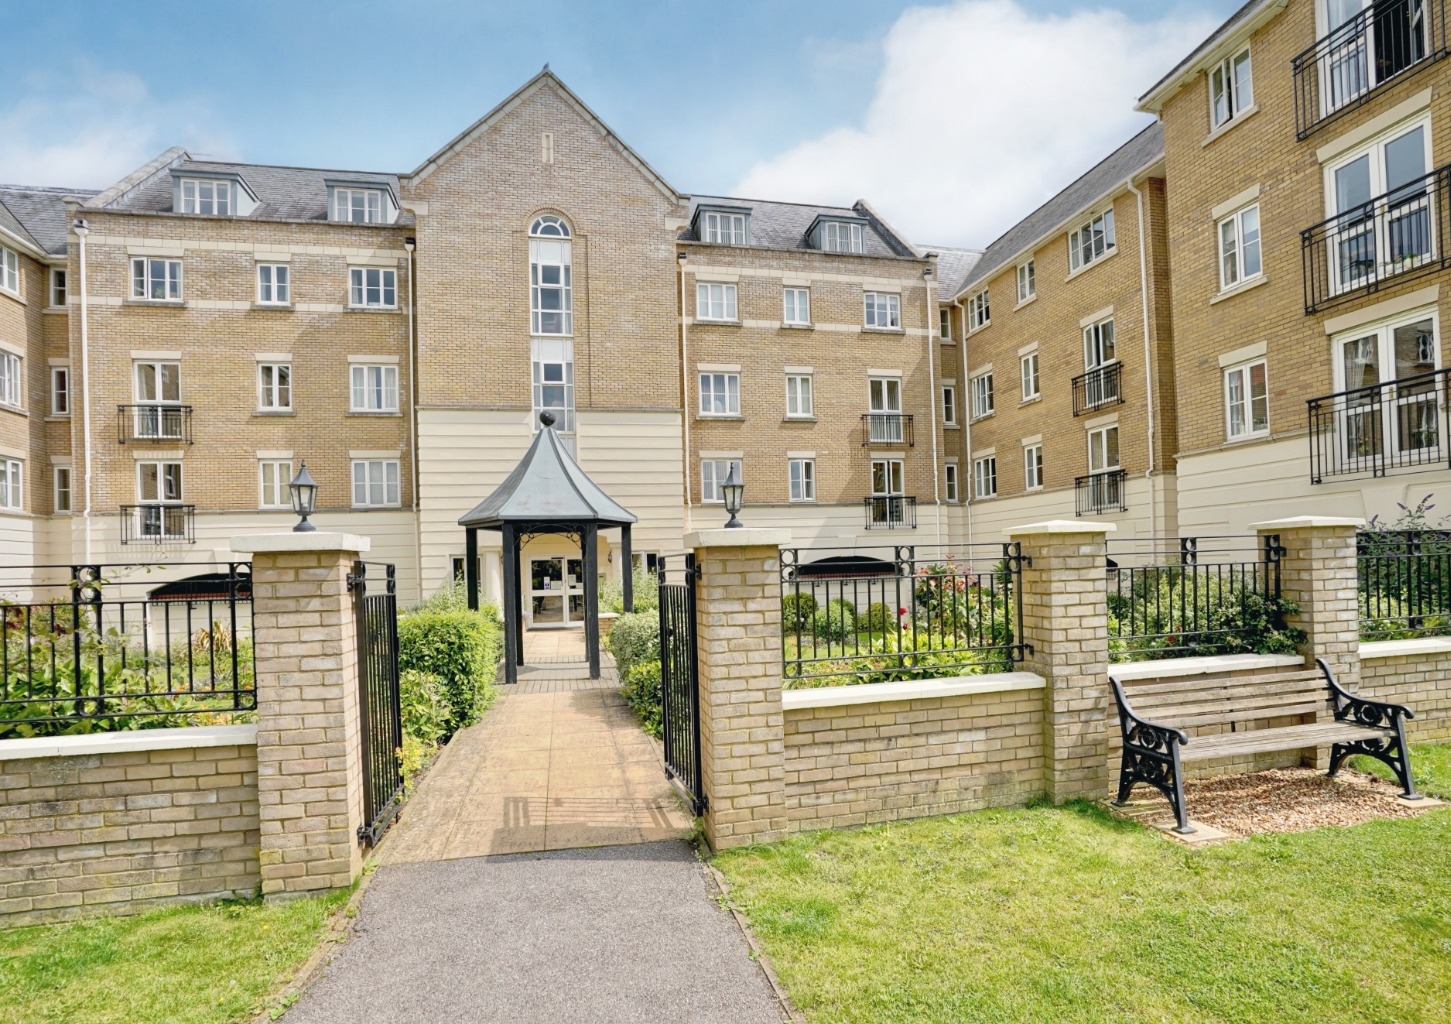 2 bed apartment for sale in Cavendish Court, Crosshall Road, St. Neots  - Property Image 1